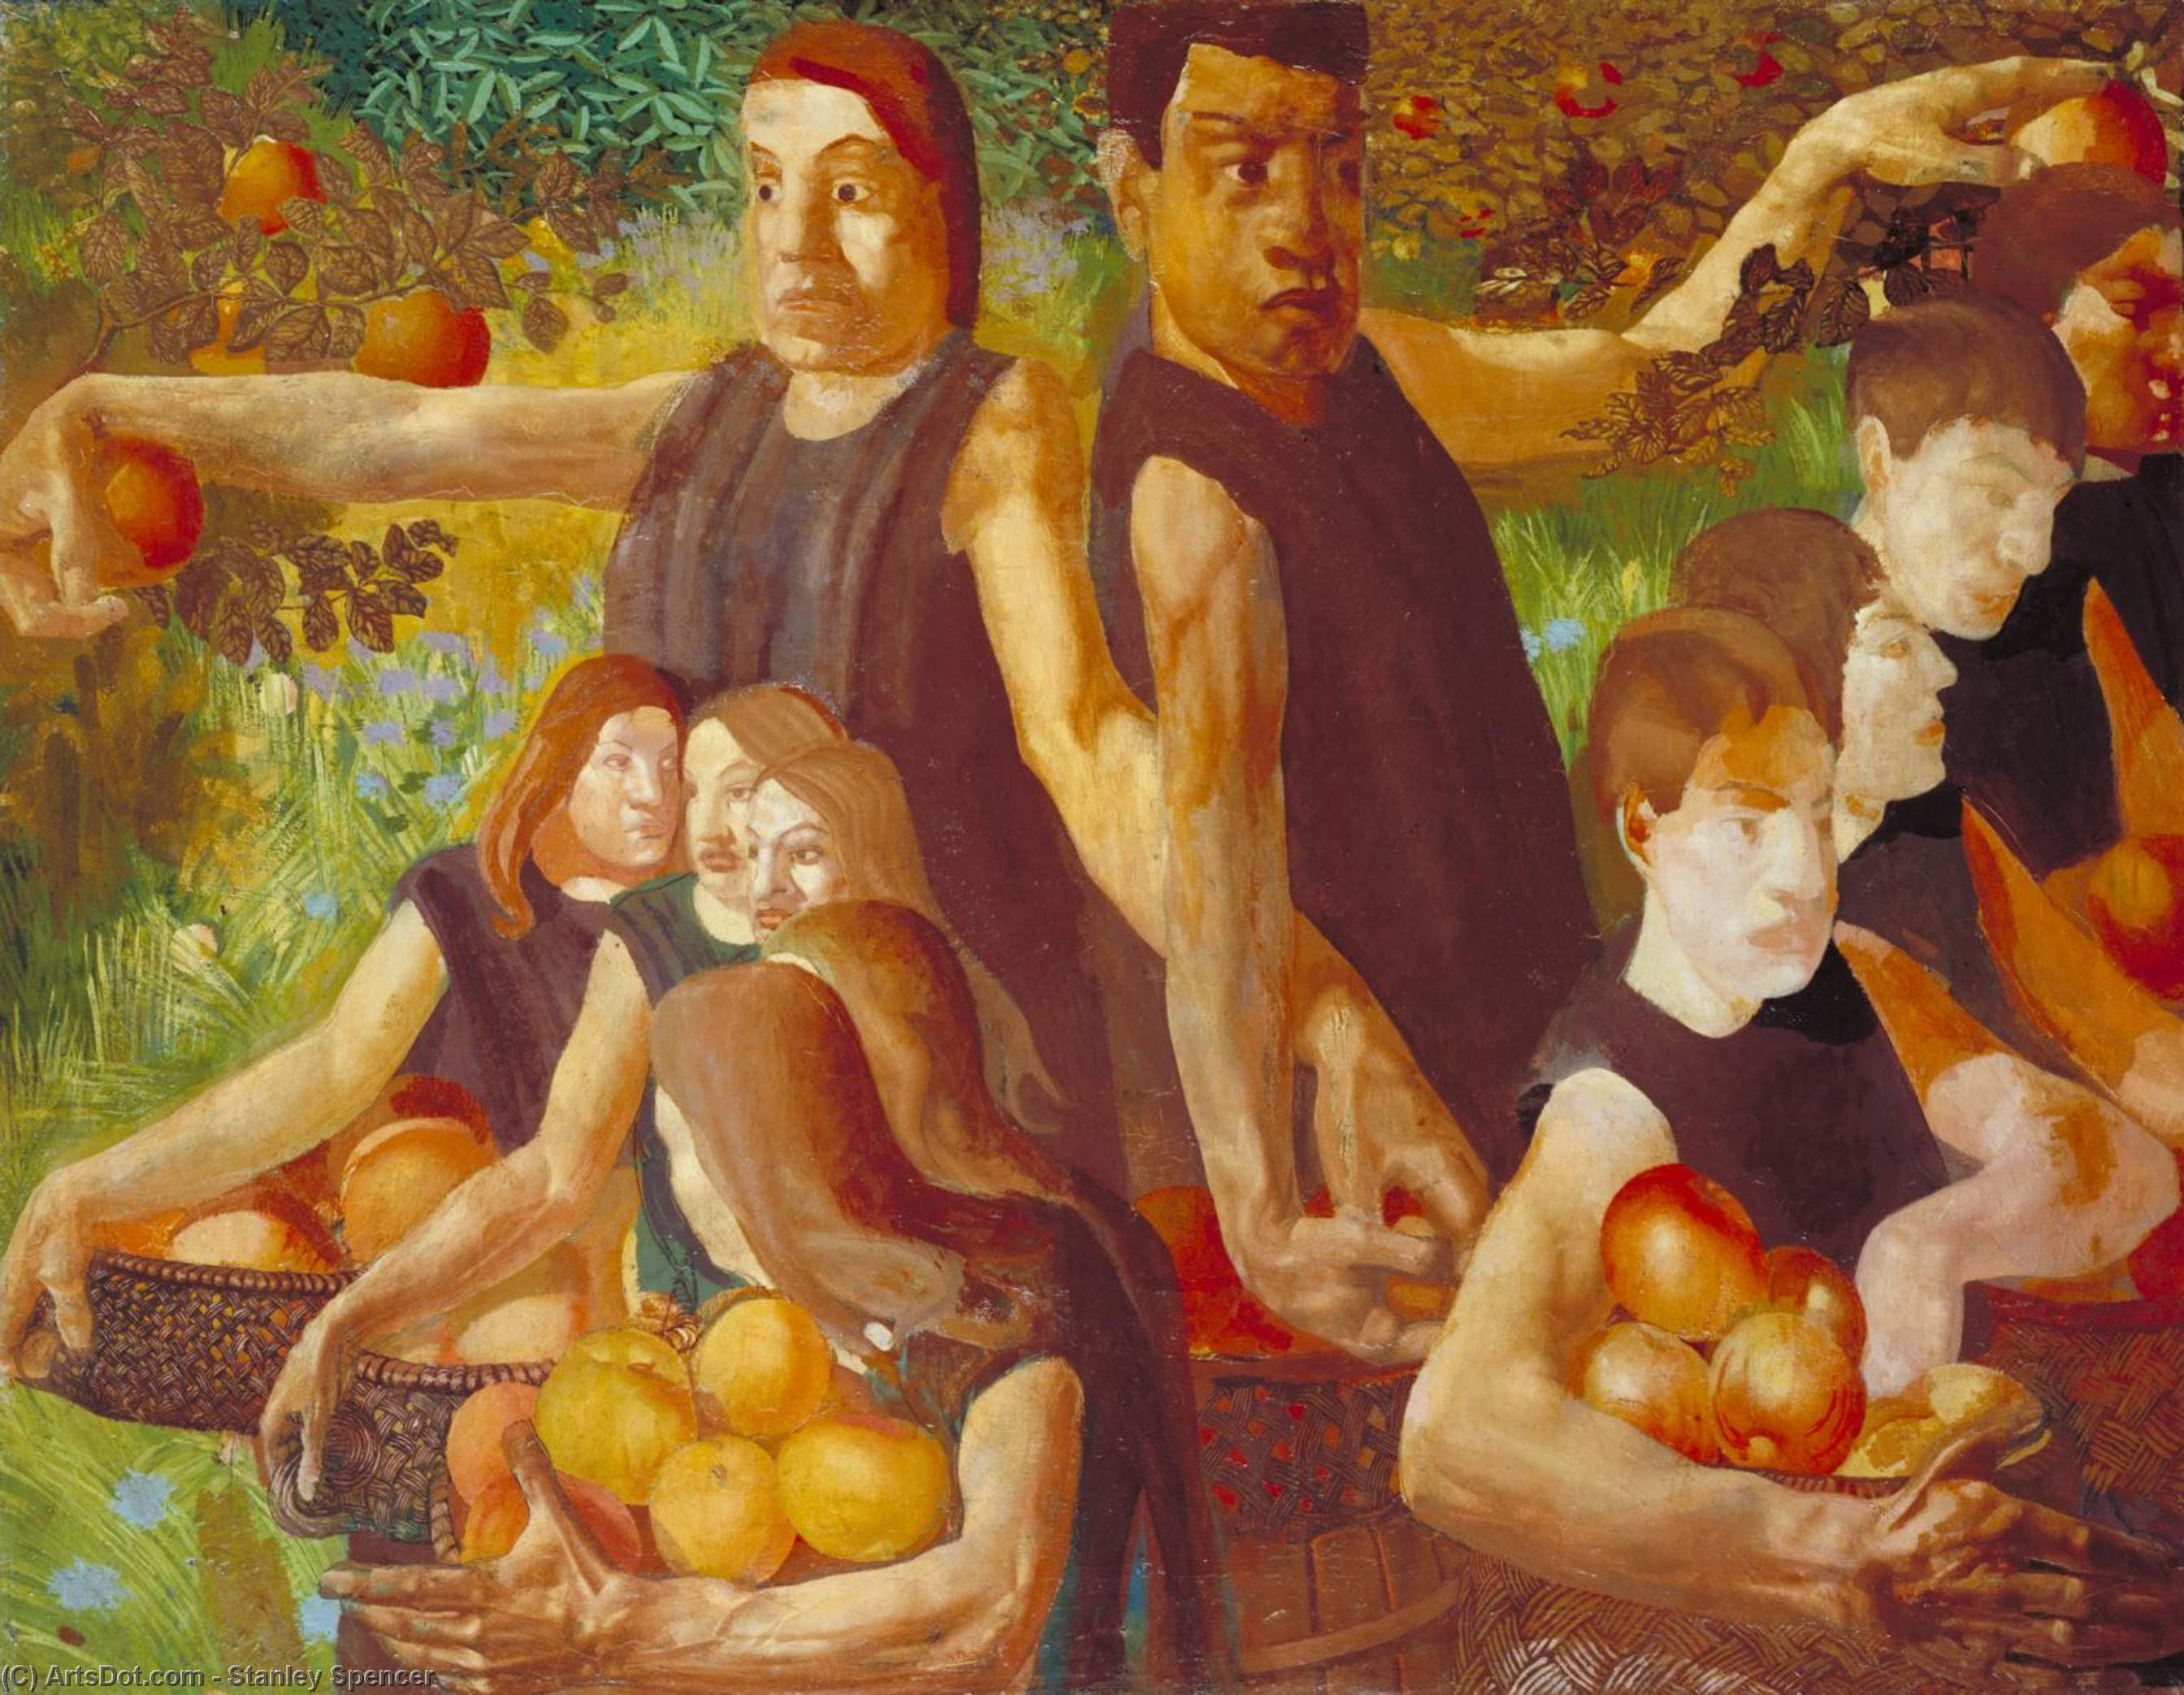 Apple a Gatherers de Stanley Spencer (1891-1959, United Kingdom)